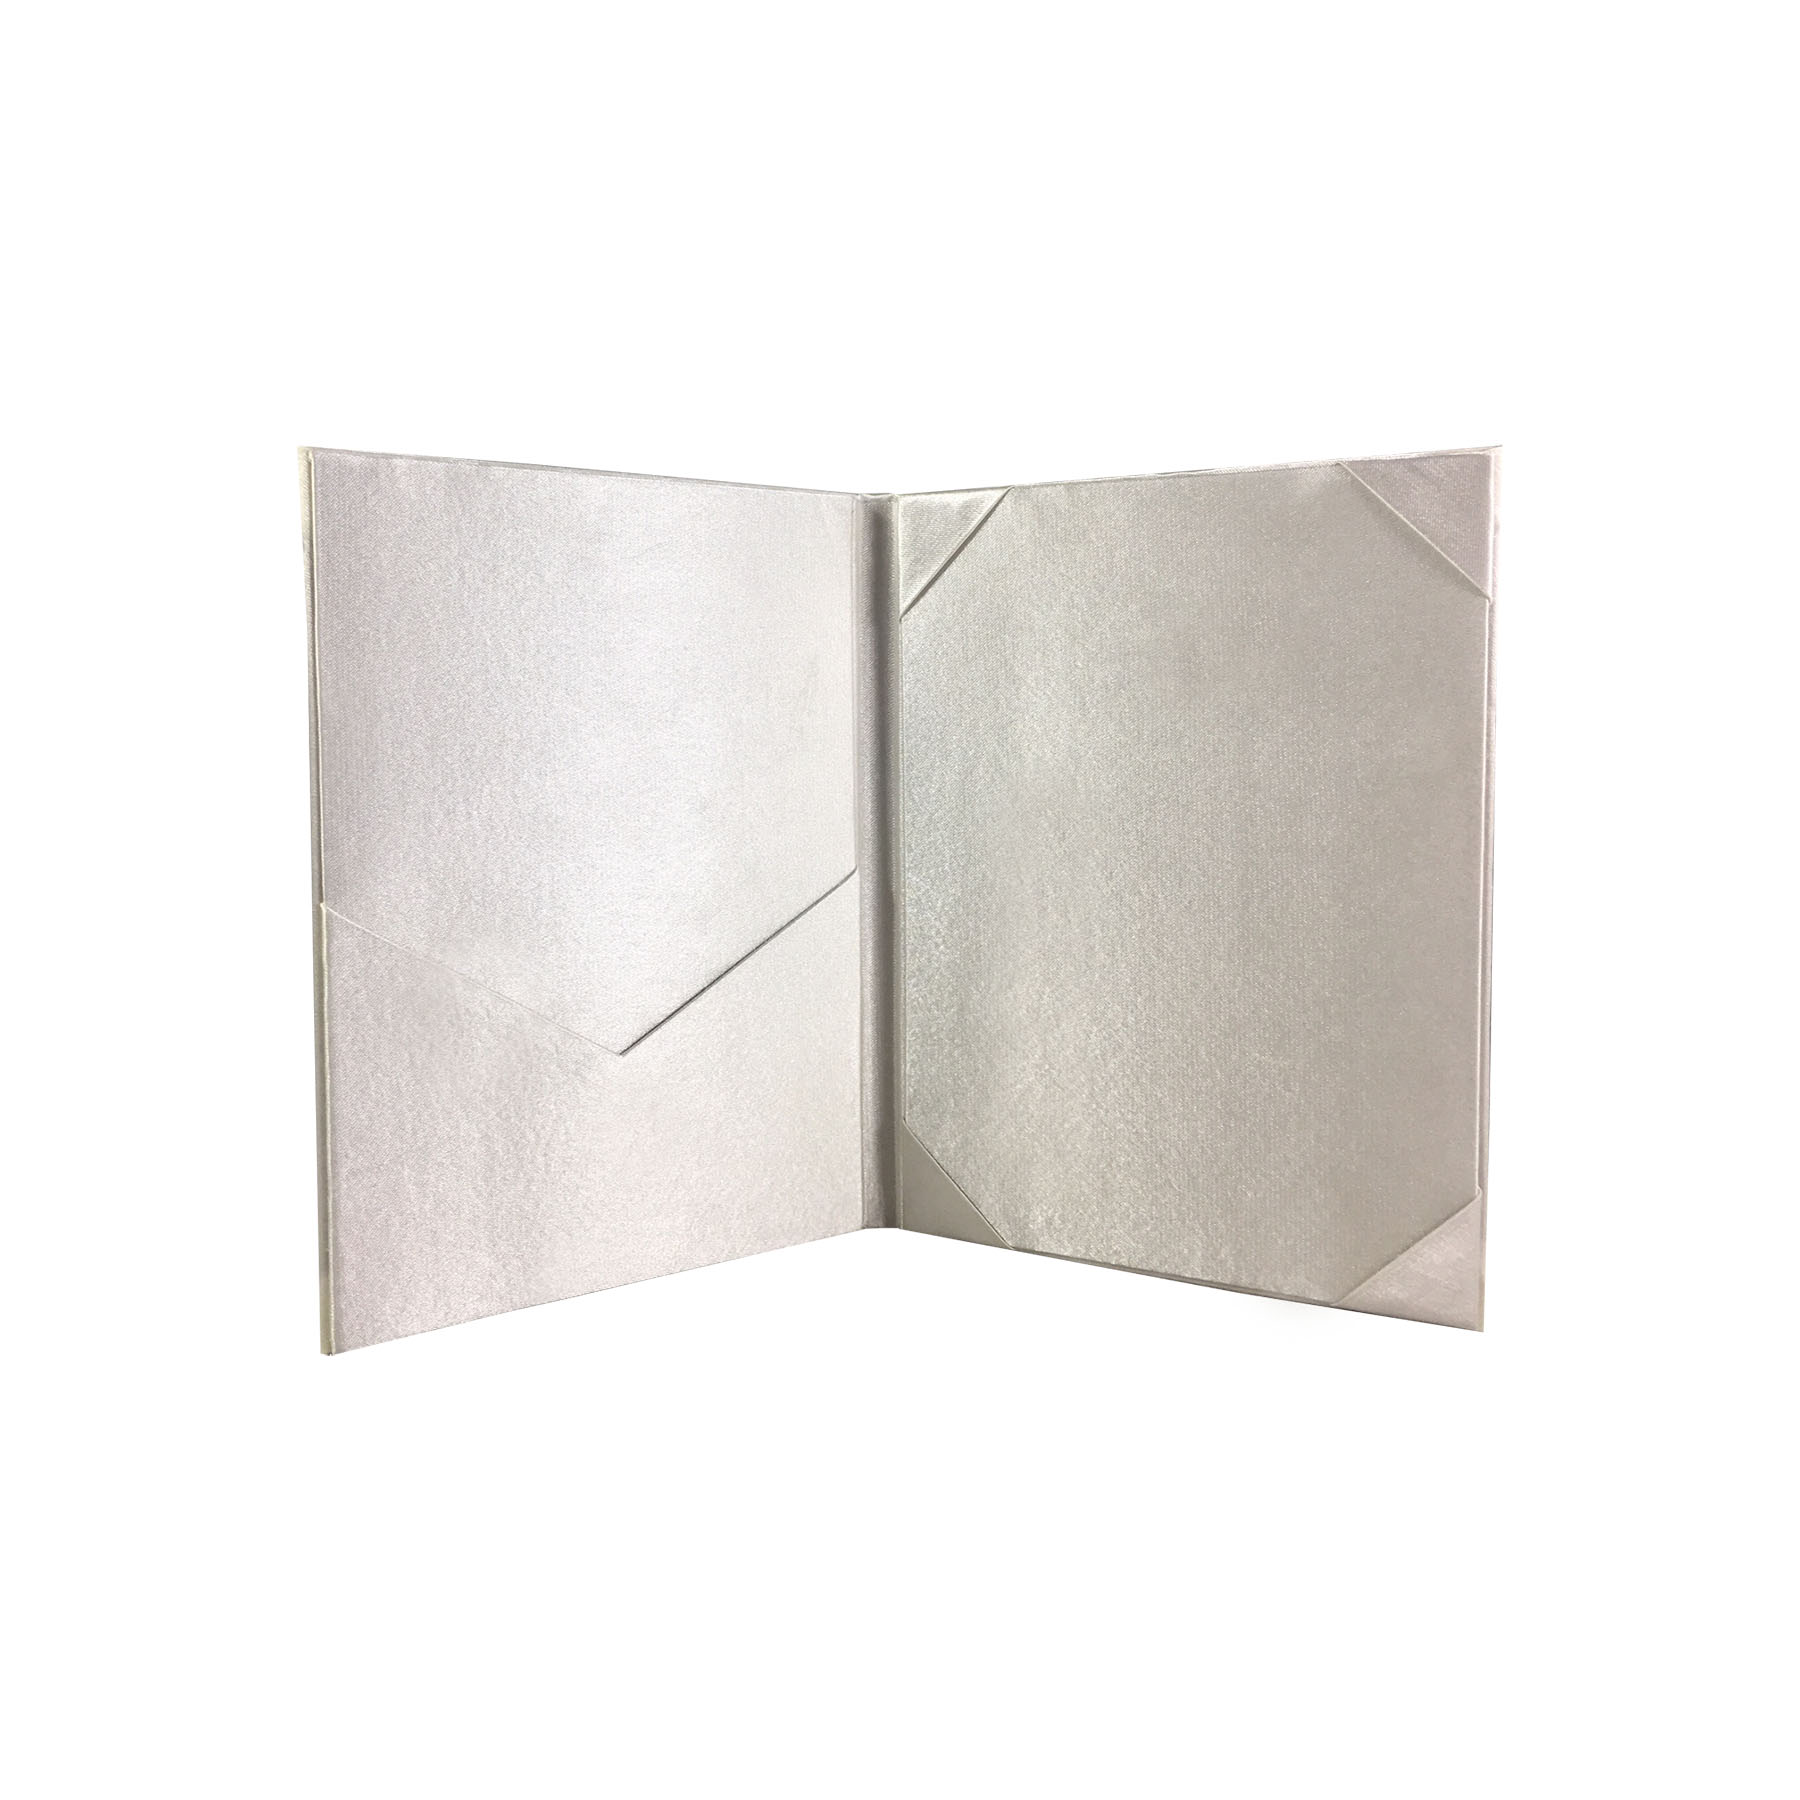 Wedding Invitation Folders With Pocket: Classic Plain Ivory Wedding Folder For Invitation Cards